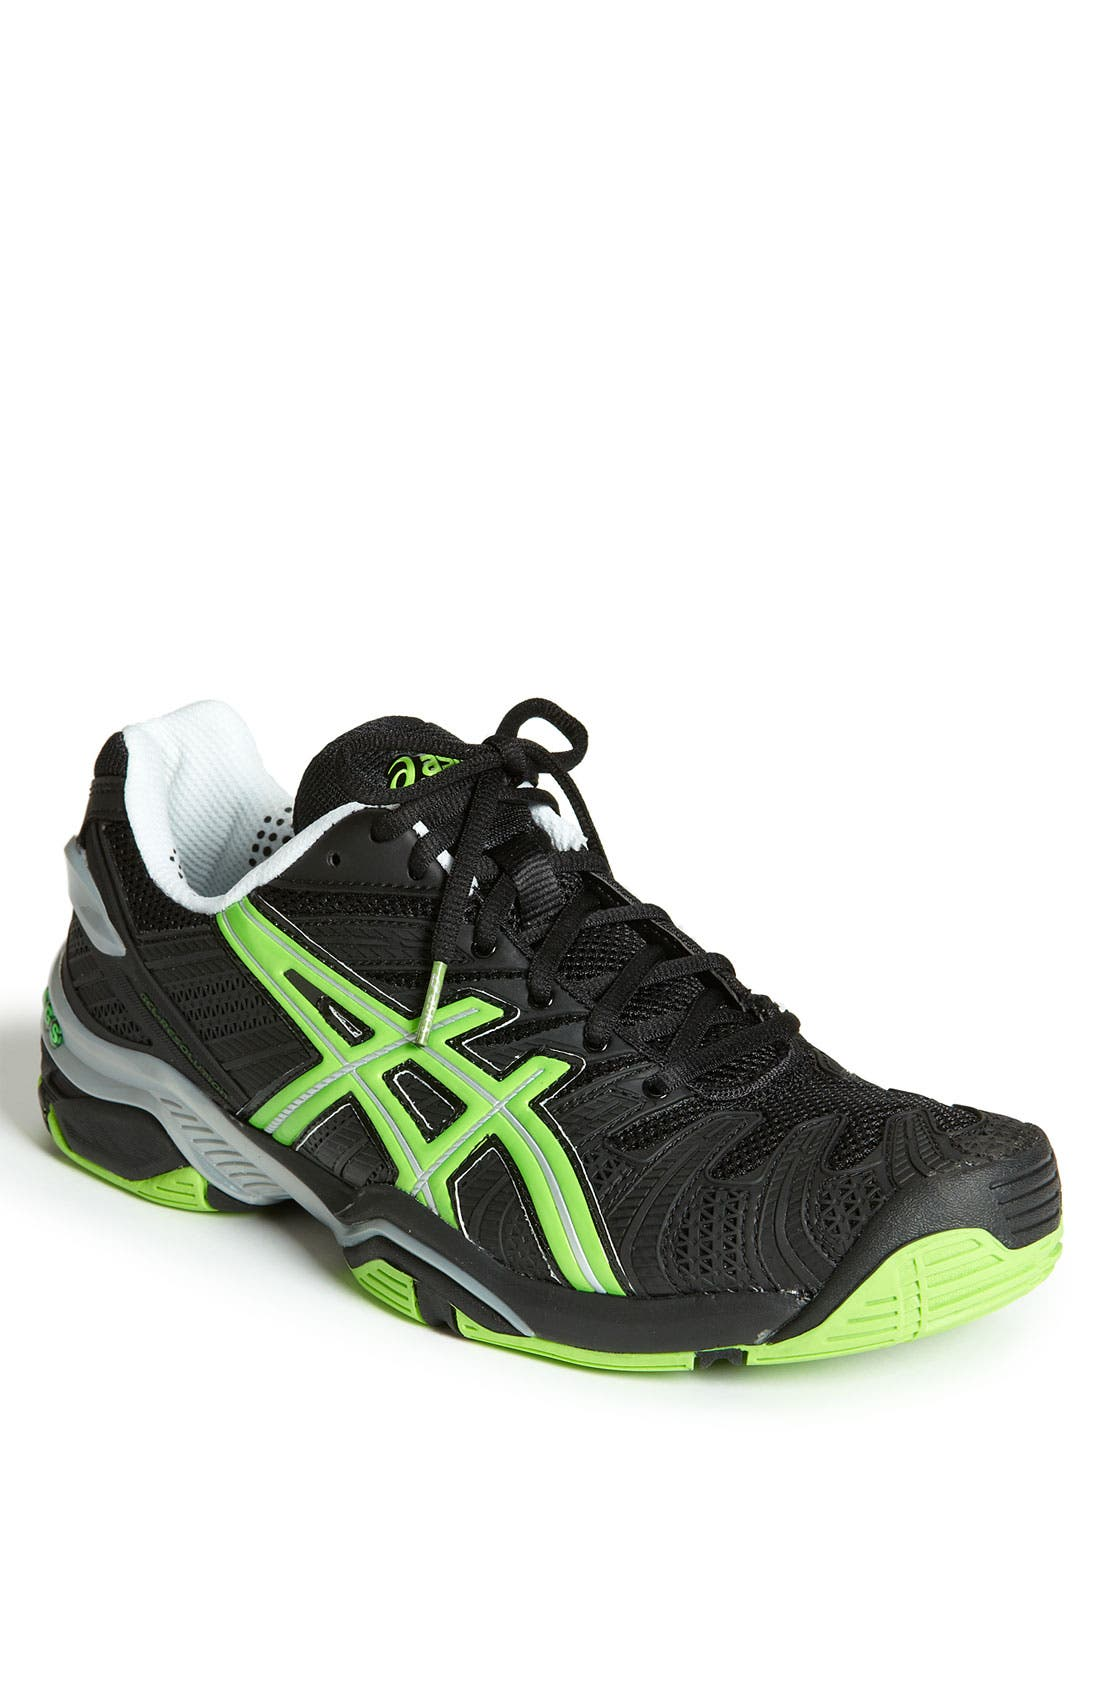 ASICS<SUP>®</SUP> 'GEL-Resolution 4' Tennis Shoe, Main, color, 007